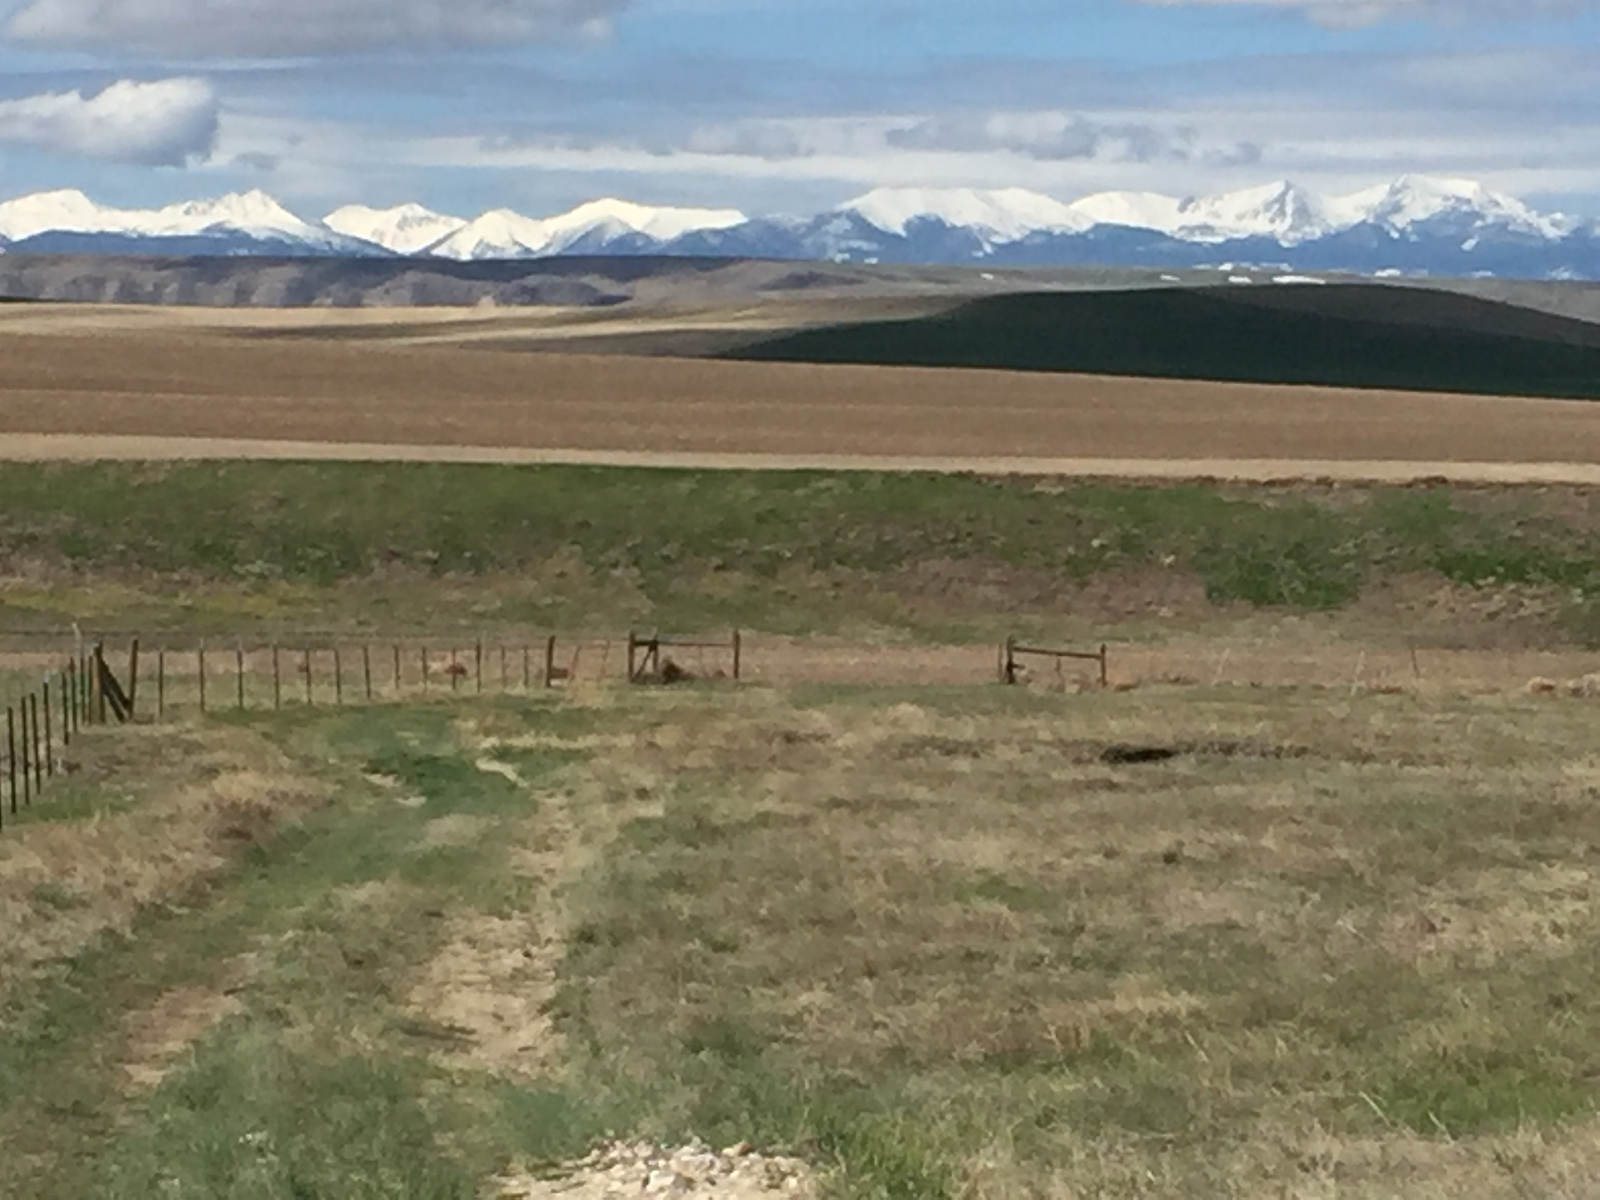 The view from Grey Cliffs Ranch in Three Forks, Montana.